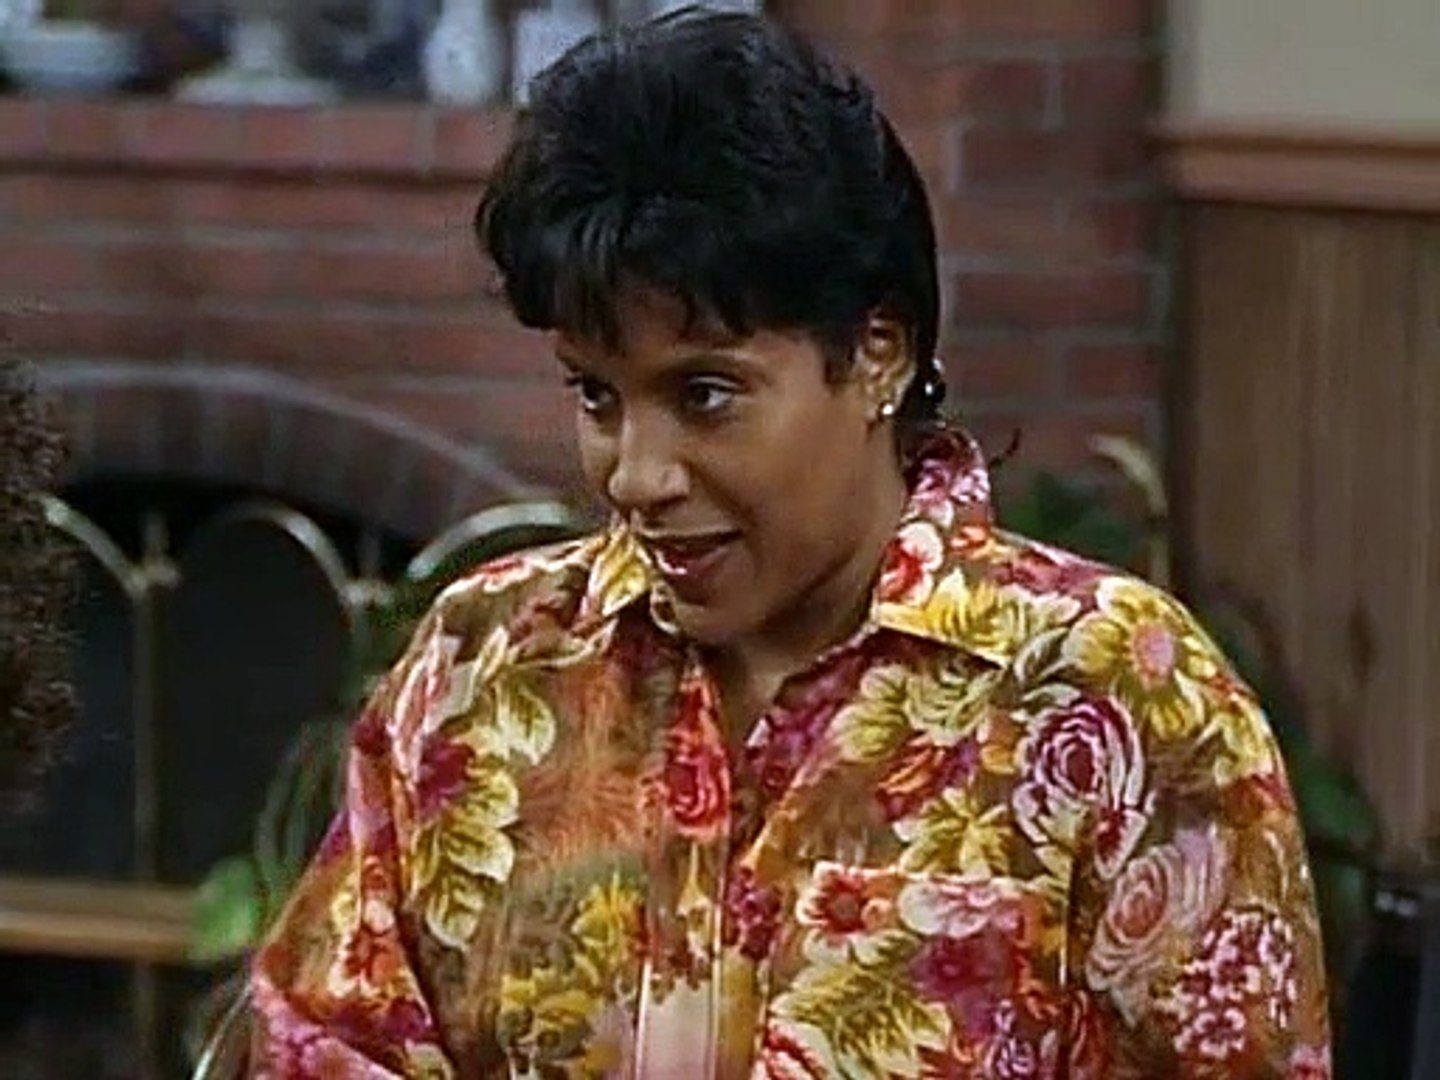 The Cosby Show S06E18 Rudy's Walk On The Wild Side